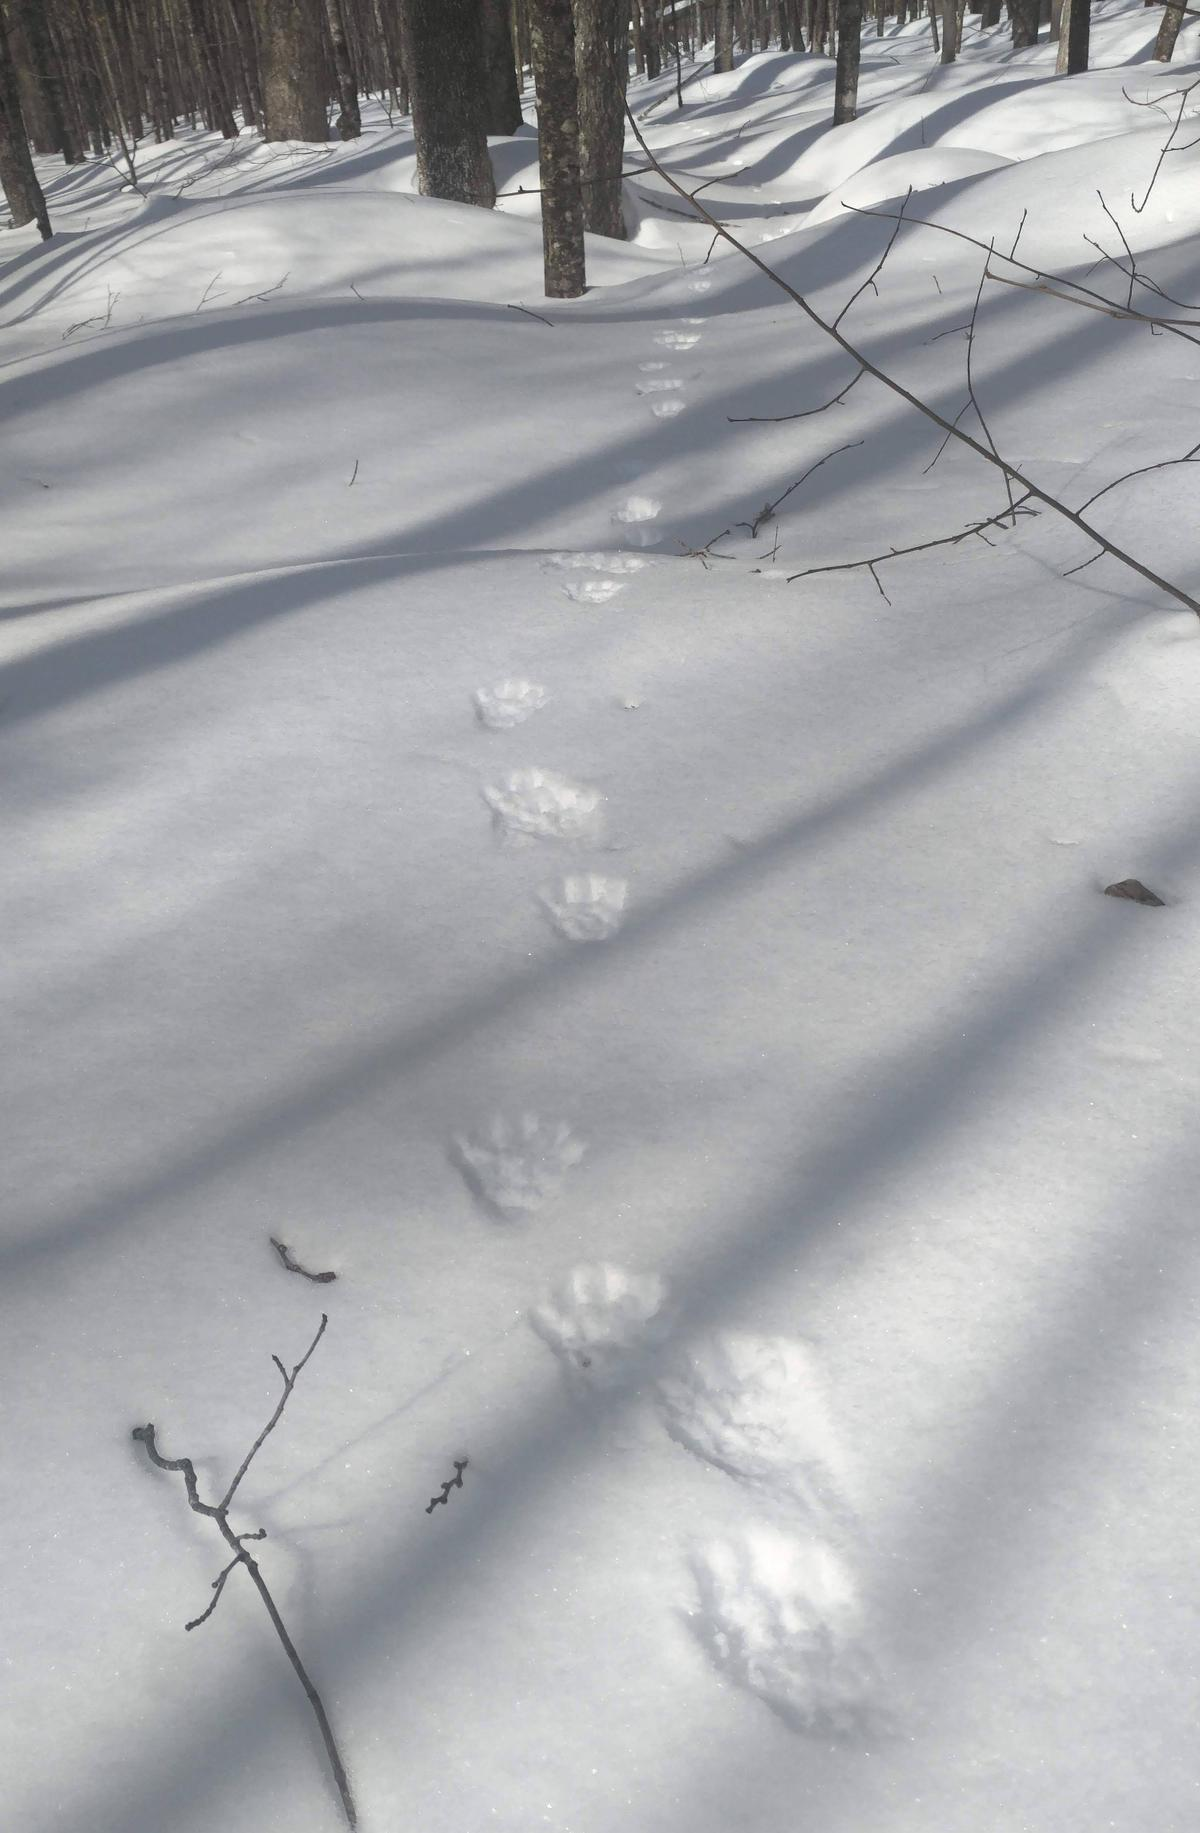 Fisher tracks through the snow.